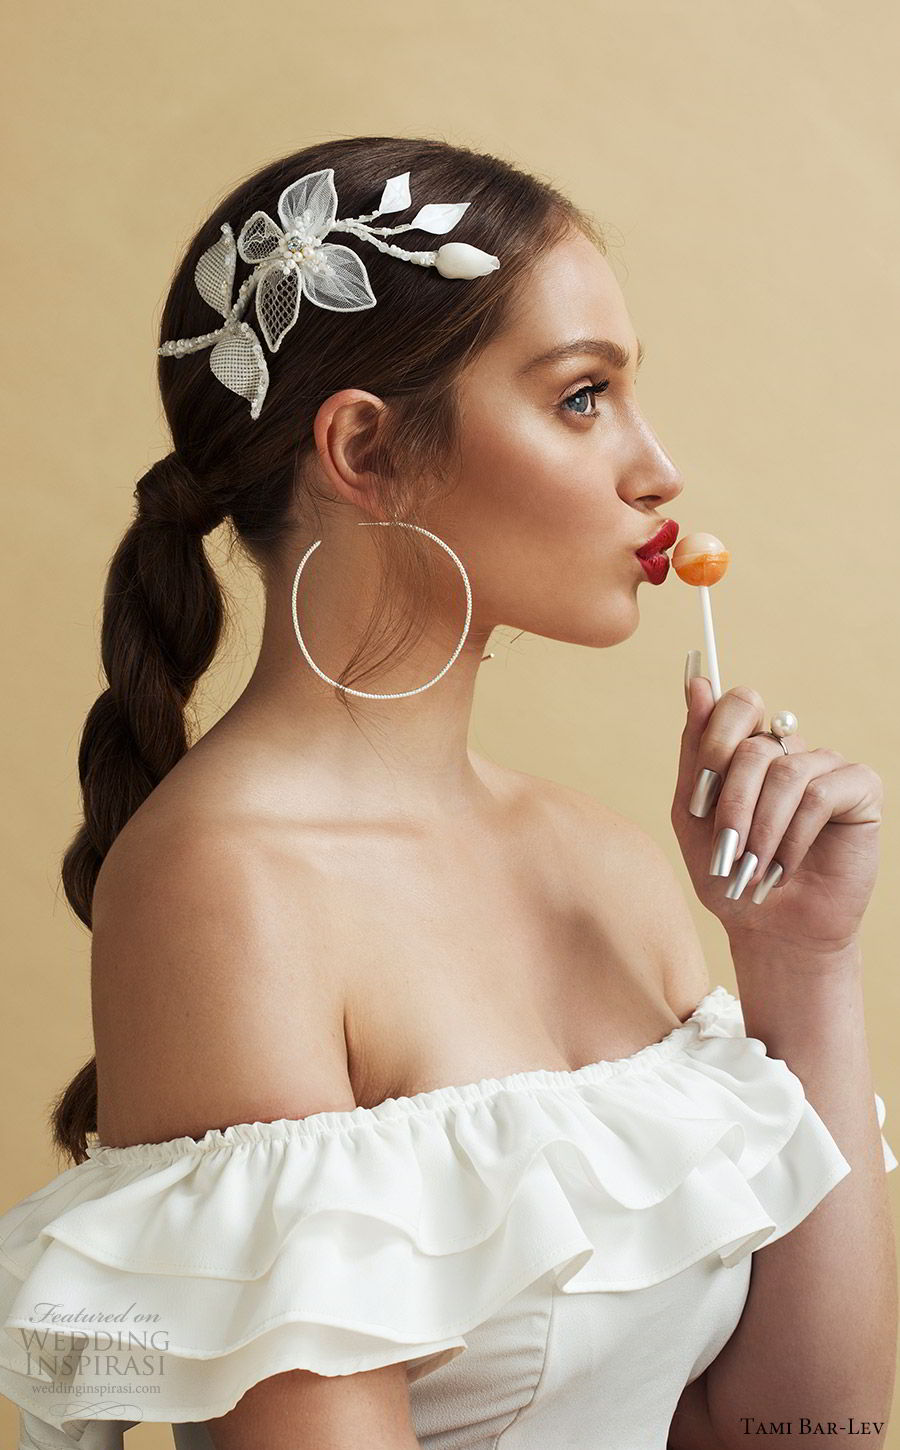 tami bar lev headpiece 2019 bridal hair accessories la jolla wedding hair accessory